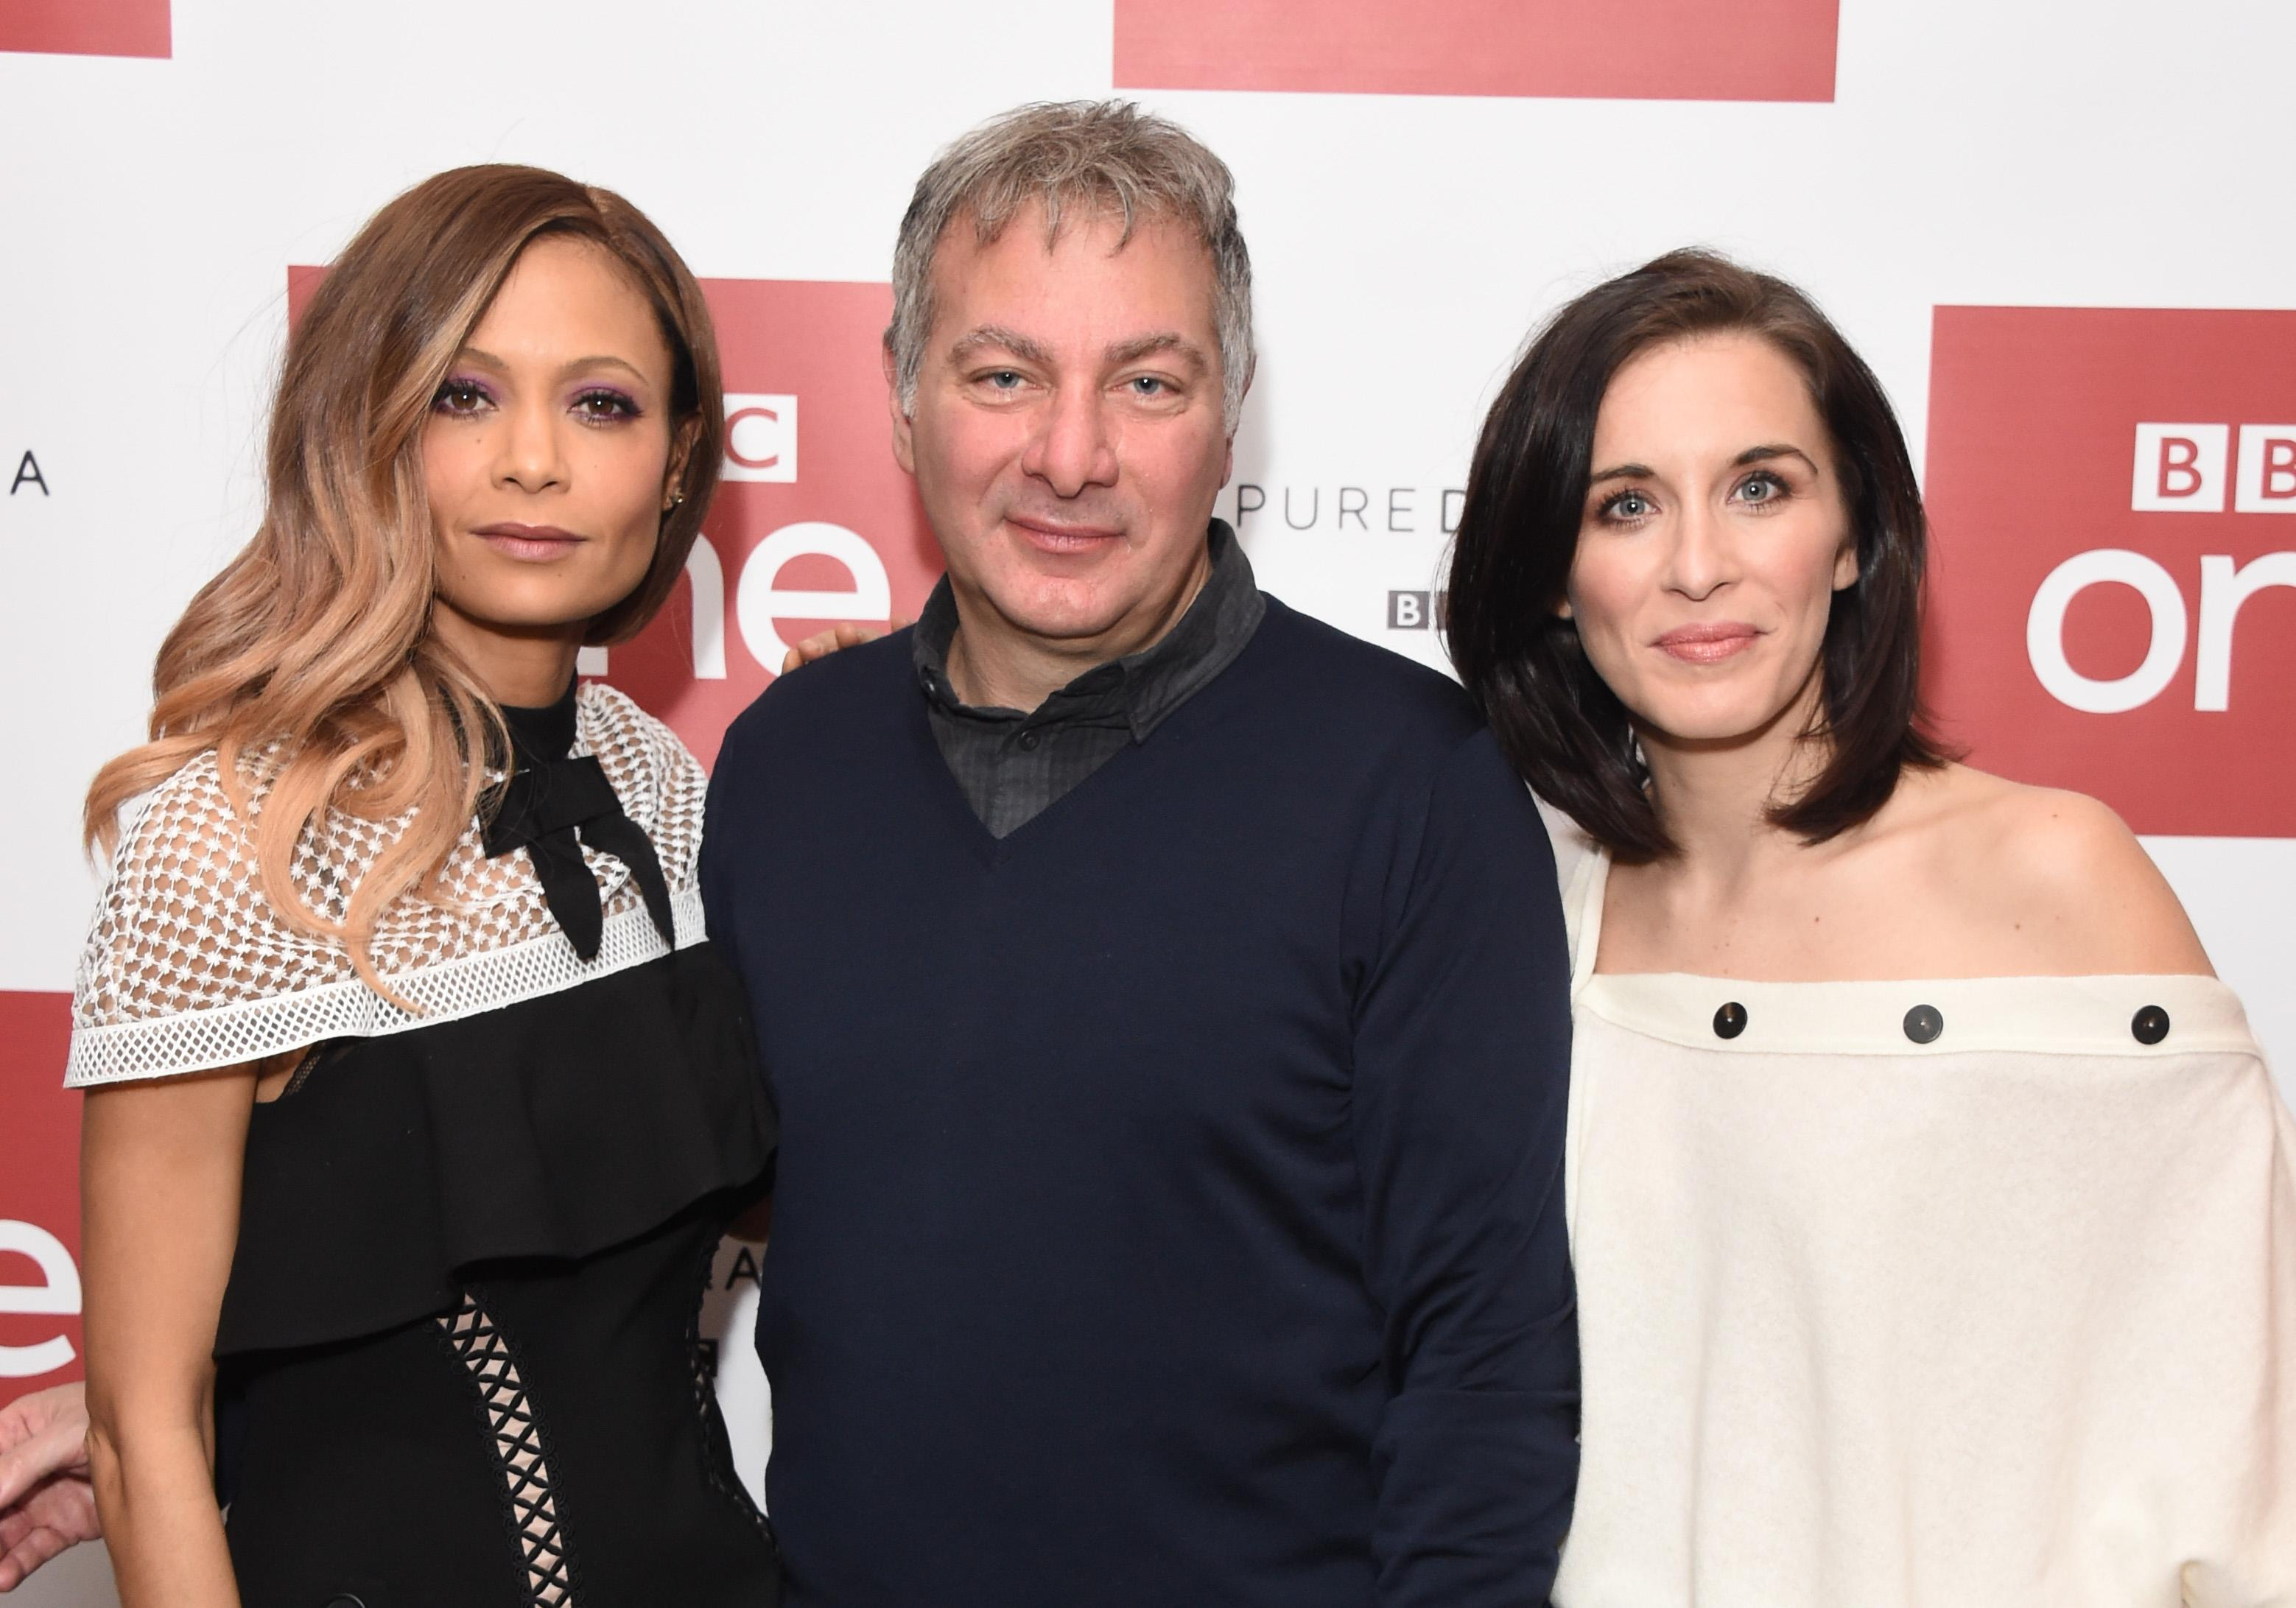 LONDON, ENGLAND - MARCH 03: Thandie Newton, Jed Mercurio and Vicky McClure attend the launch of the BBC drama 'Line Of Duty' on March 3, 2017 in London, United Kingdom. (Photo by Stuart C. Wilson/Getty Images)